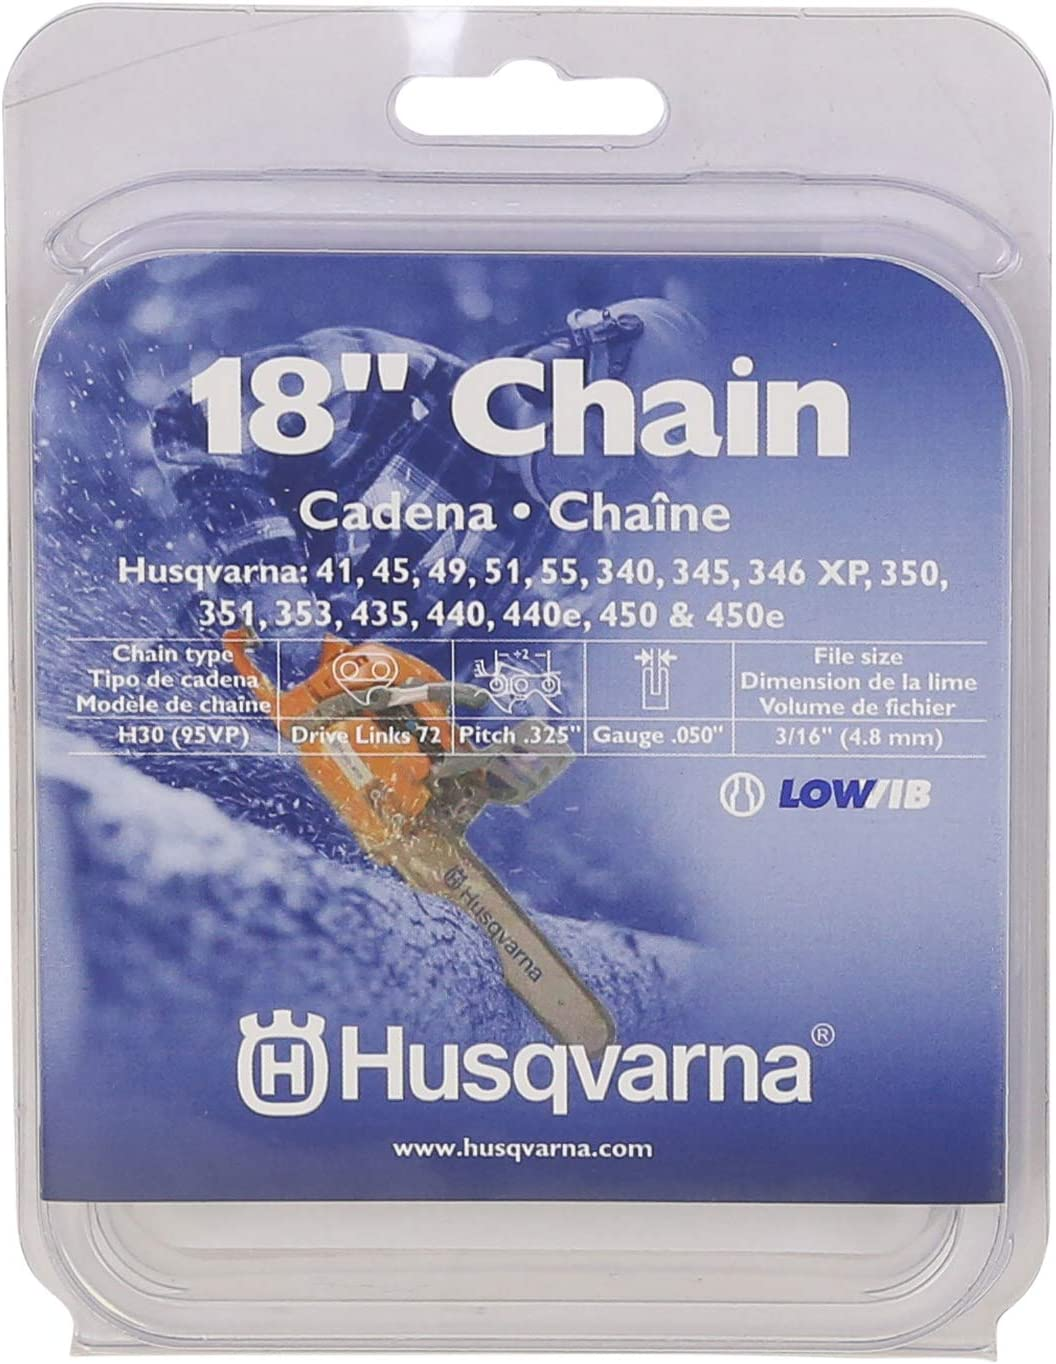 Husqvarna Pixel Saw Chain